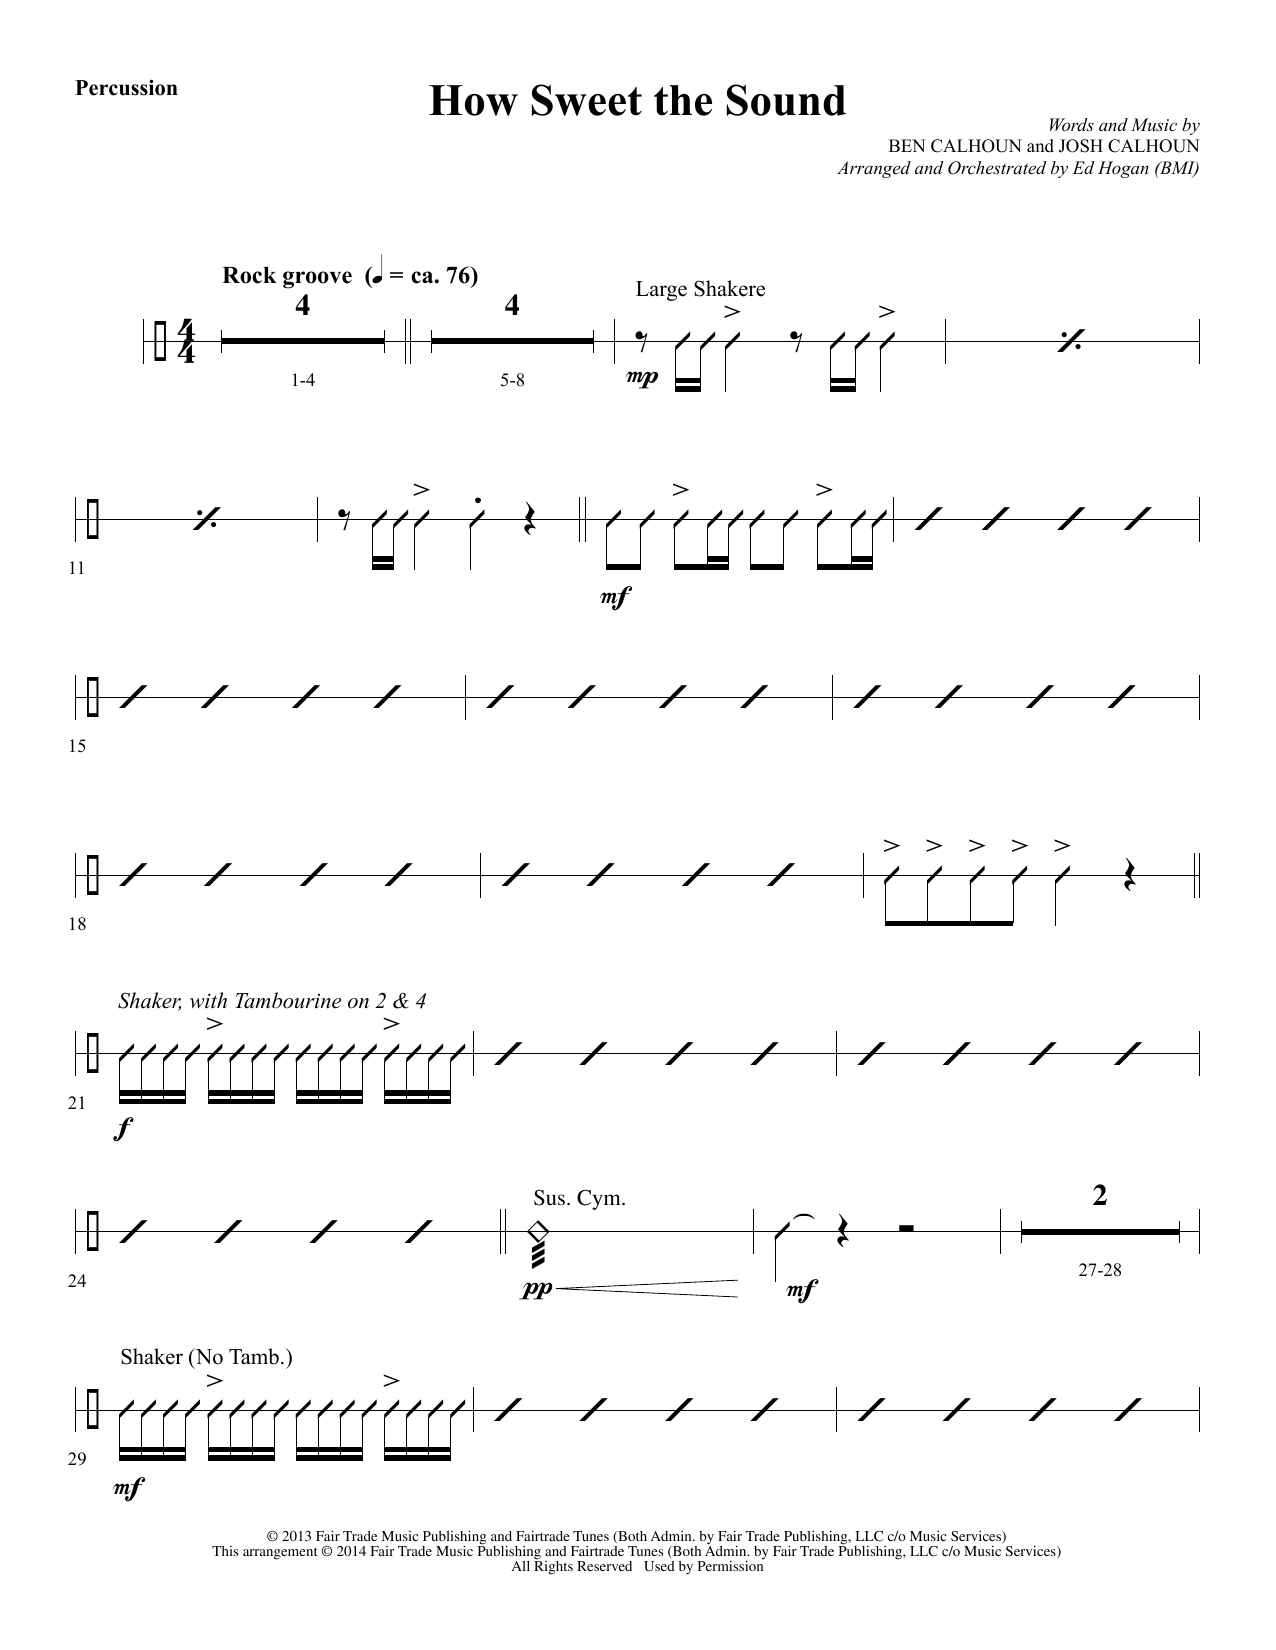 Ed Hogan How Sweet the Sound - Percussion sheet music notes and chords. Download Printable PDF.